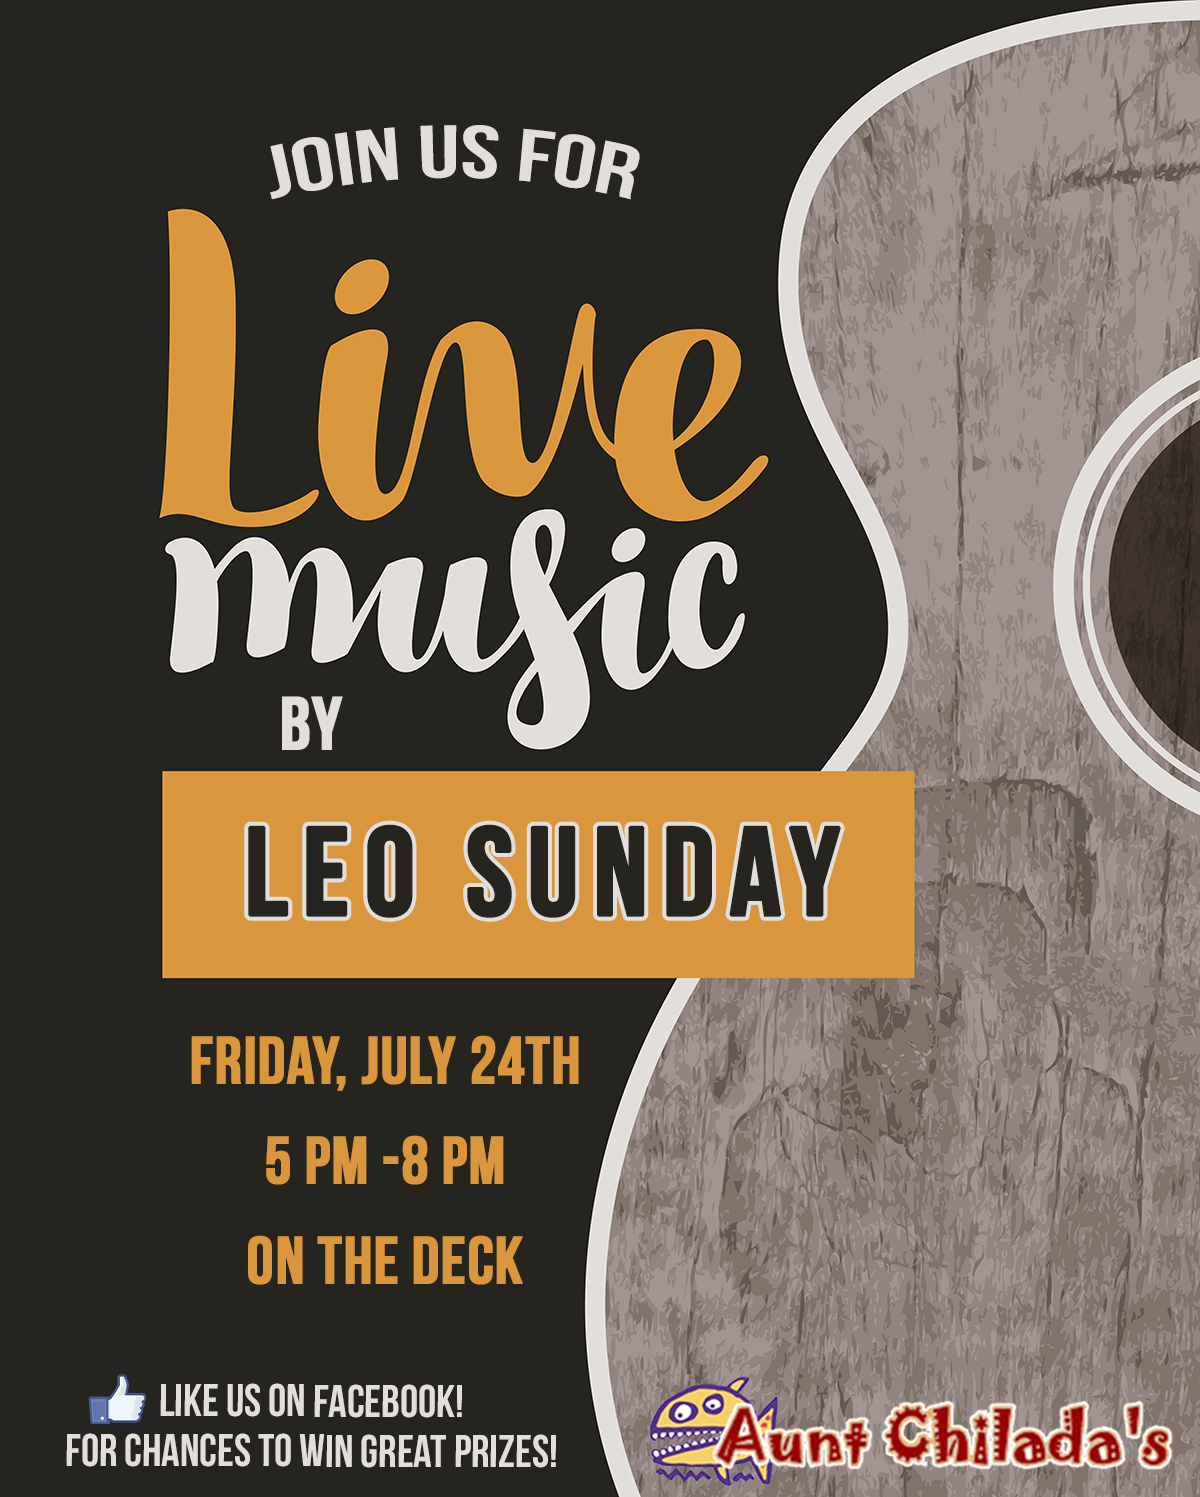 Live music by Leo Sunday on Friday July 24th from 5 to 8 pm on the deck